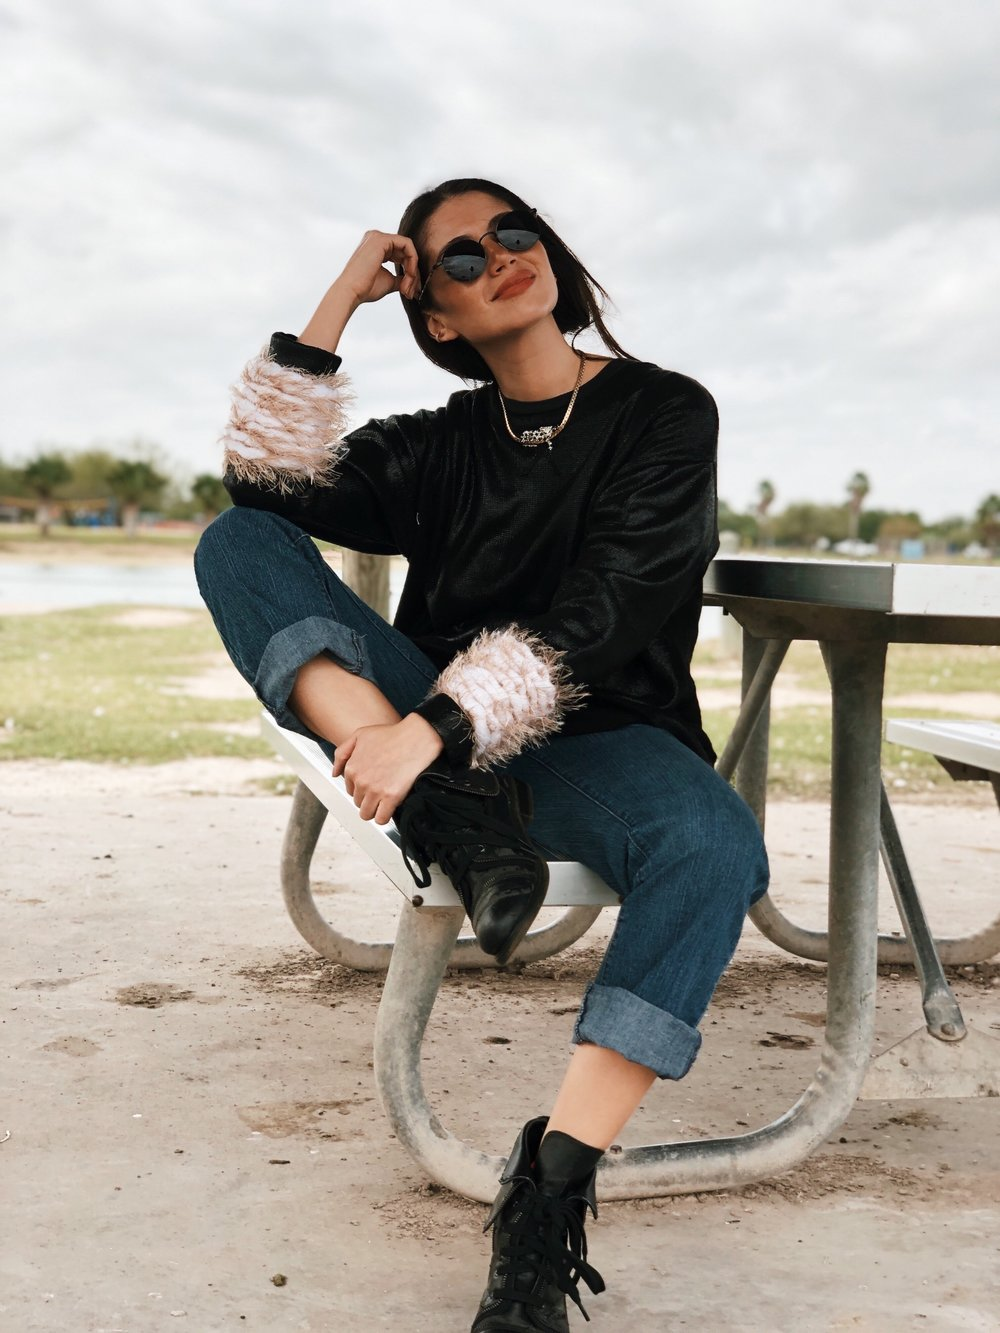 Chic black and denim outfit - A Week Of Cruelty-Free Outfits & Vegan Beauty With Jessica Salazar From All There August on The Good Trade